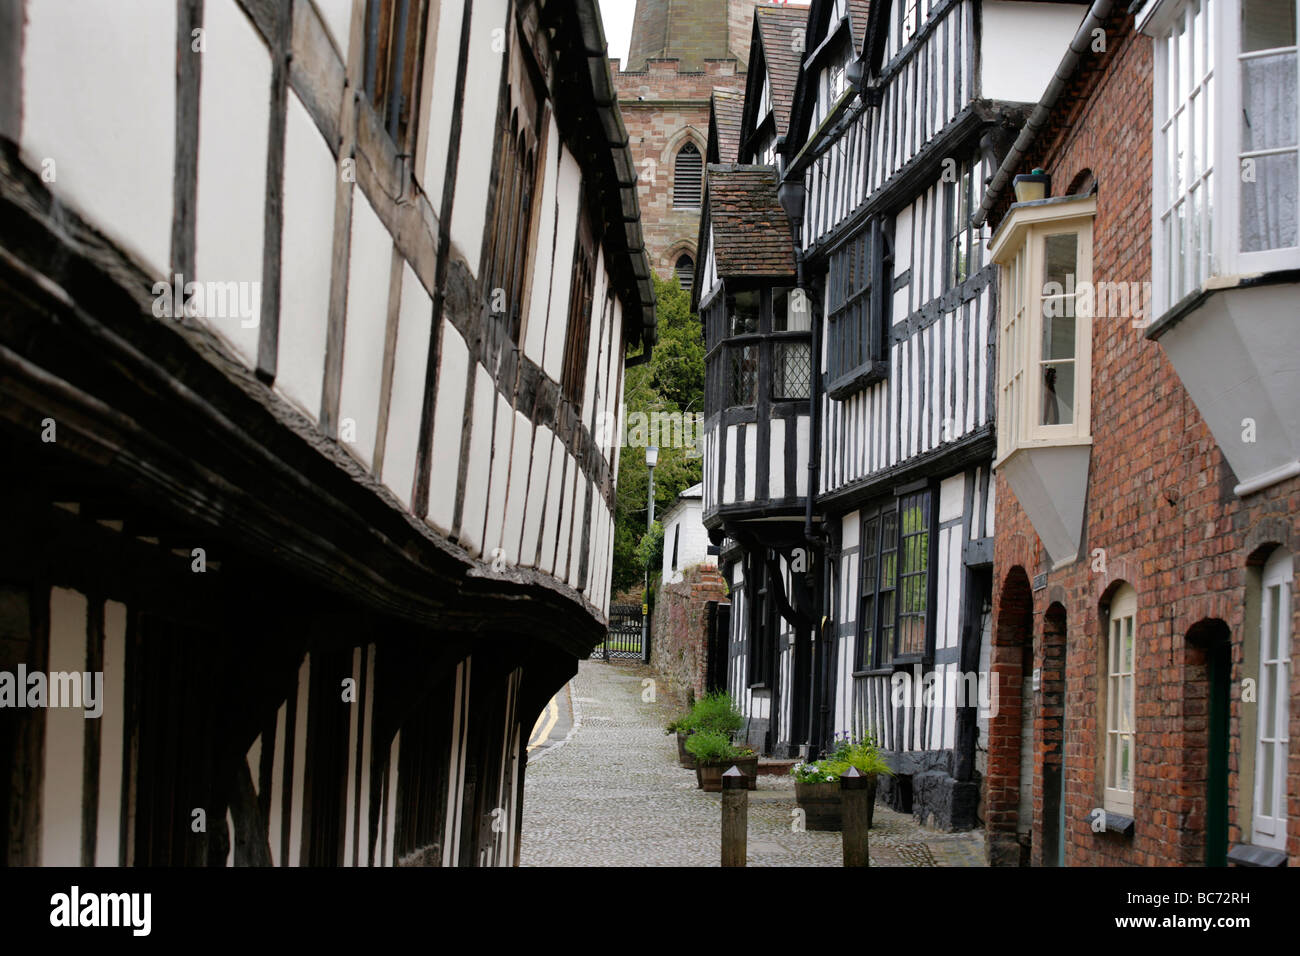 Church Lane in Ledbury, Gloucestershire, UK - Stock Image